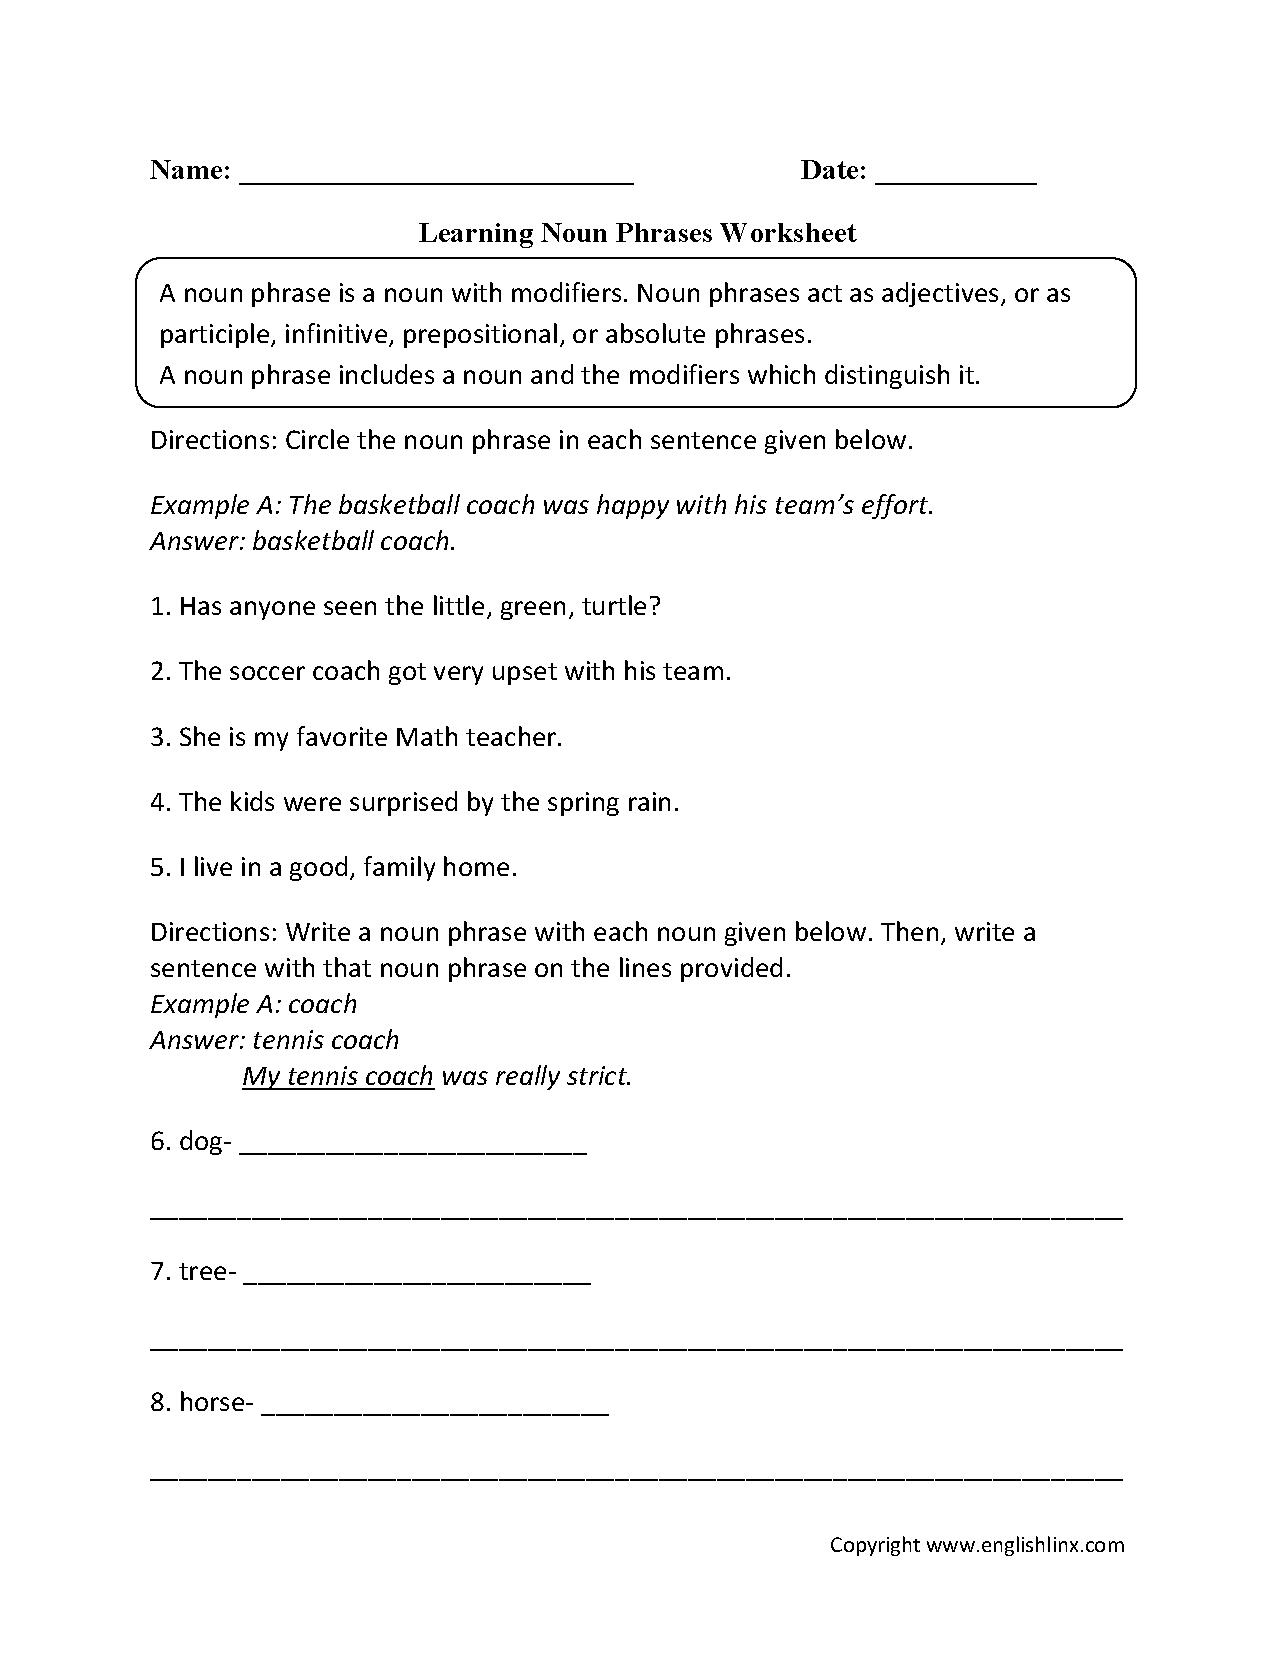 worksheet Noun Verb Worksheet nouns worksheets noun phrases worksheets